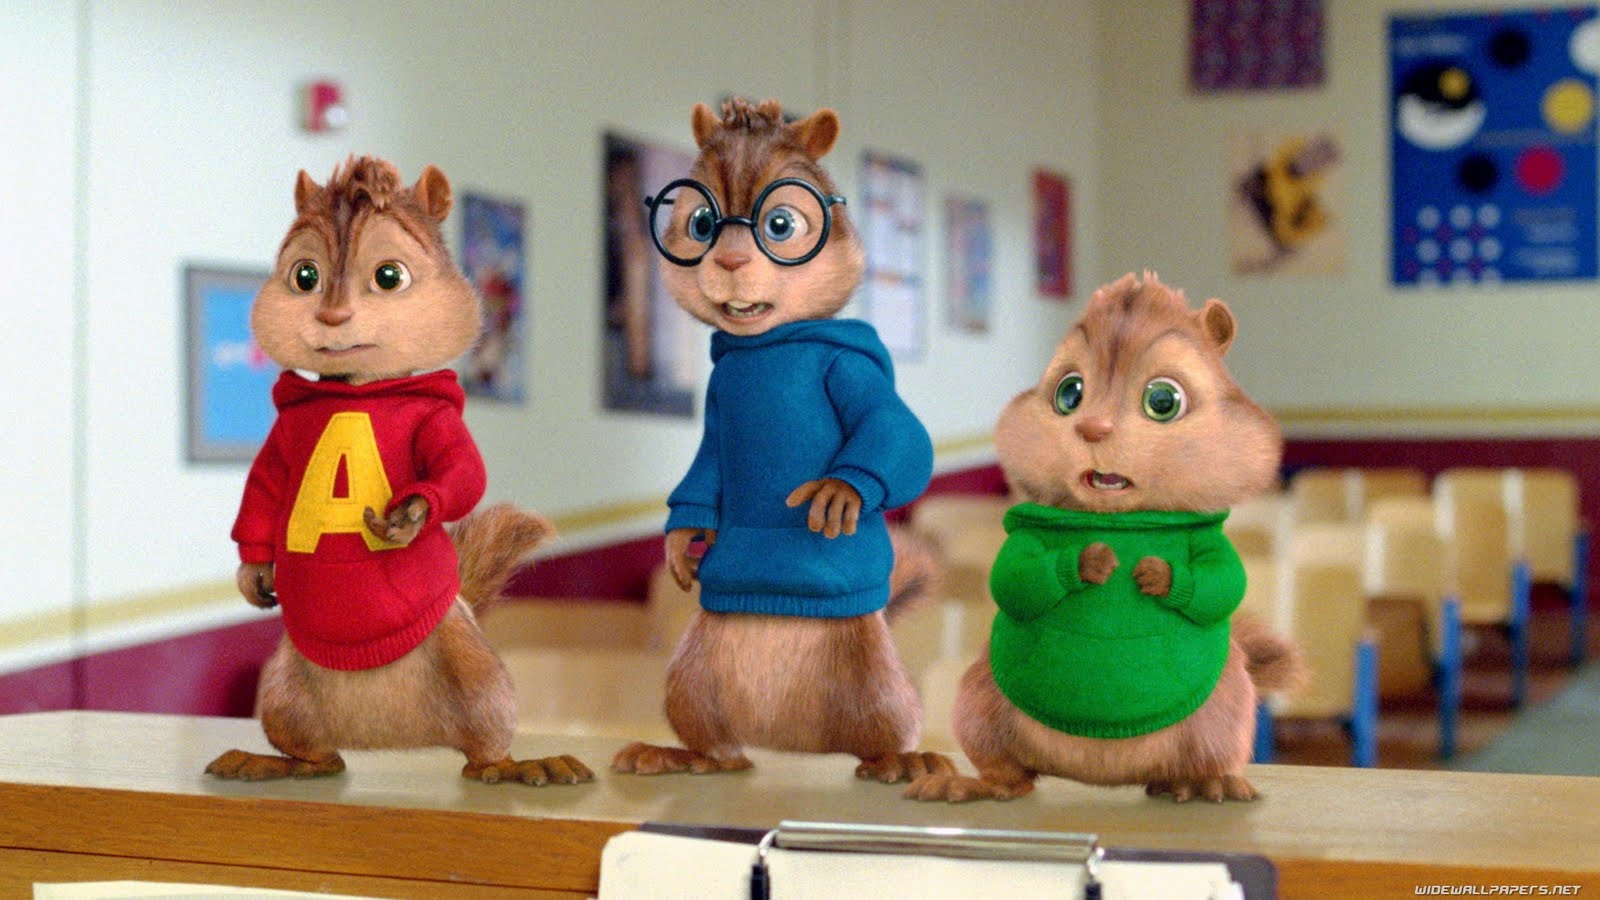 alvin and the chipmunks wallpapers - Alvin and the Chipmunks free Wallpapers (14 photos) for